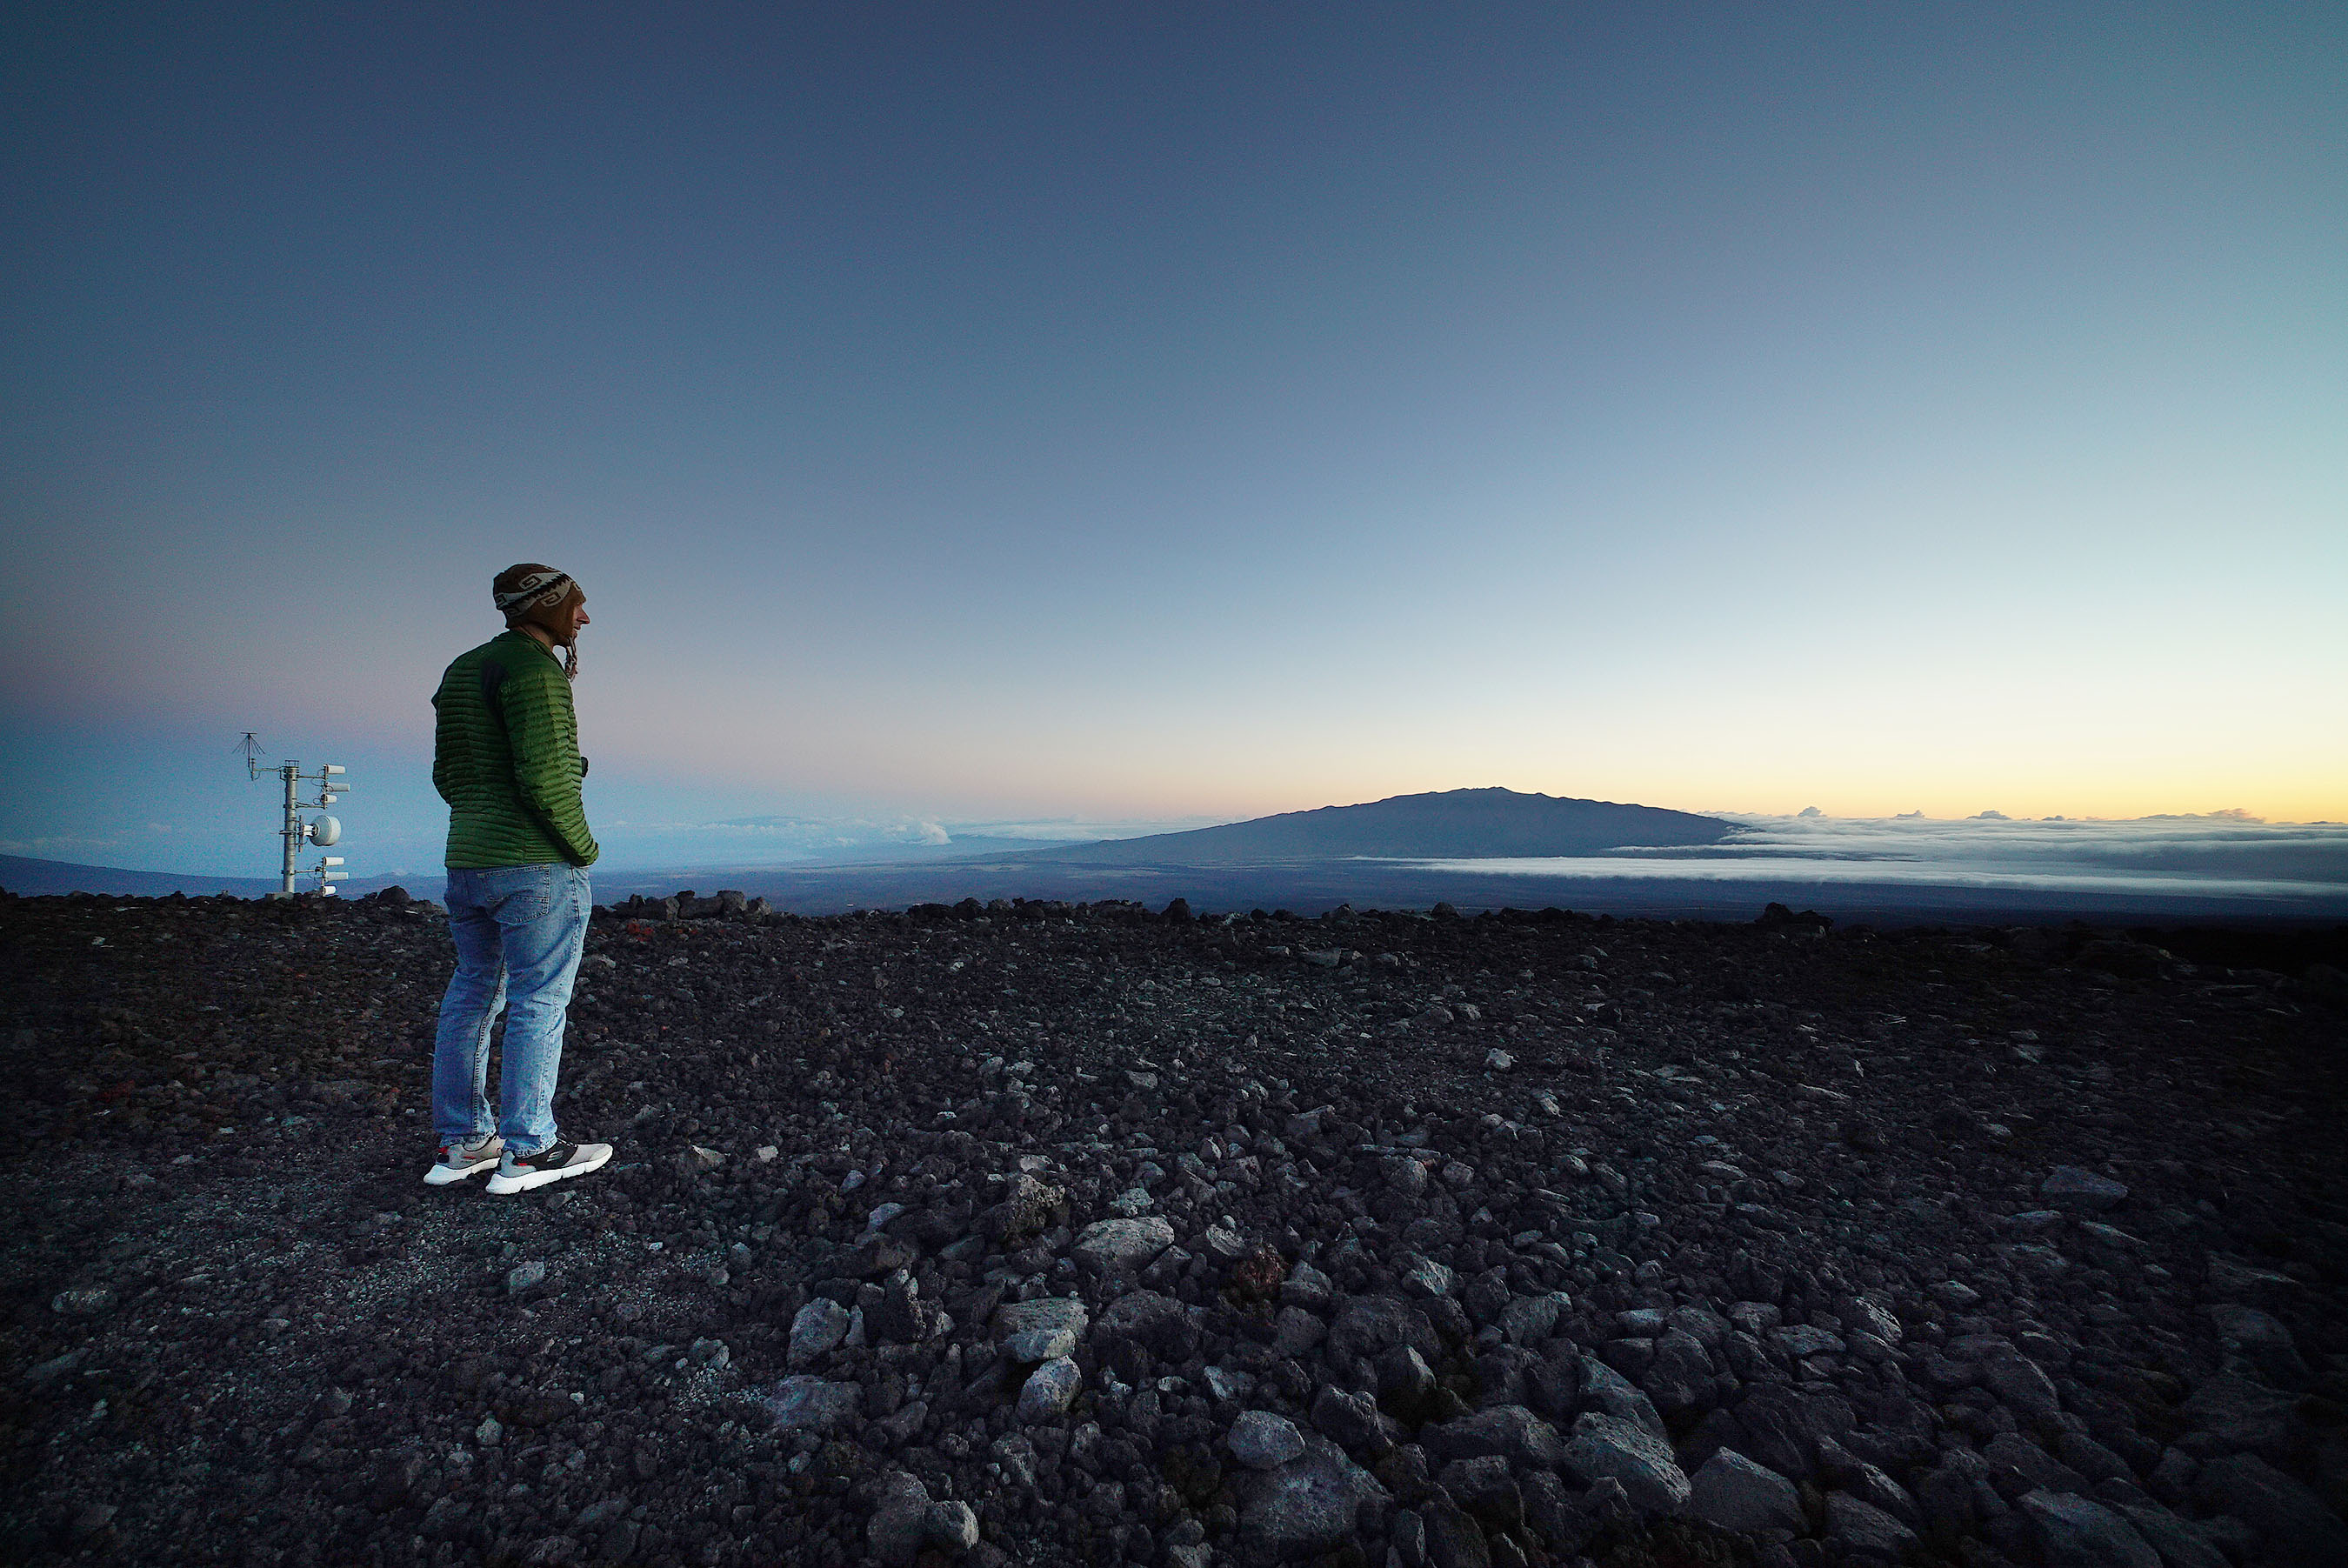 <p><strong>Foundational Science:</strong> Aiden Colton, a NOAA technician at Mauna Loa Observatory, takes a moment to observe Mauna Kea at sunrise. He gathers samples of the clean air atop Mauna Loa for climate scientists to use throughout the world.</p>